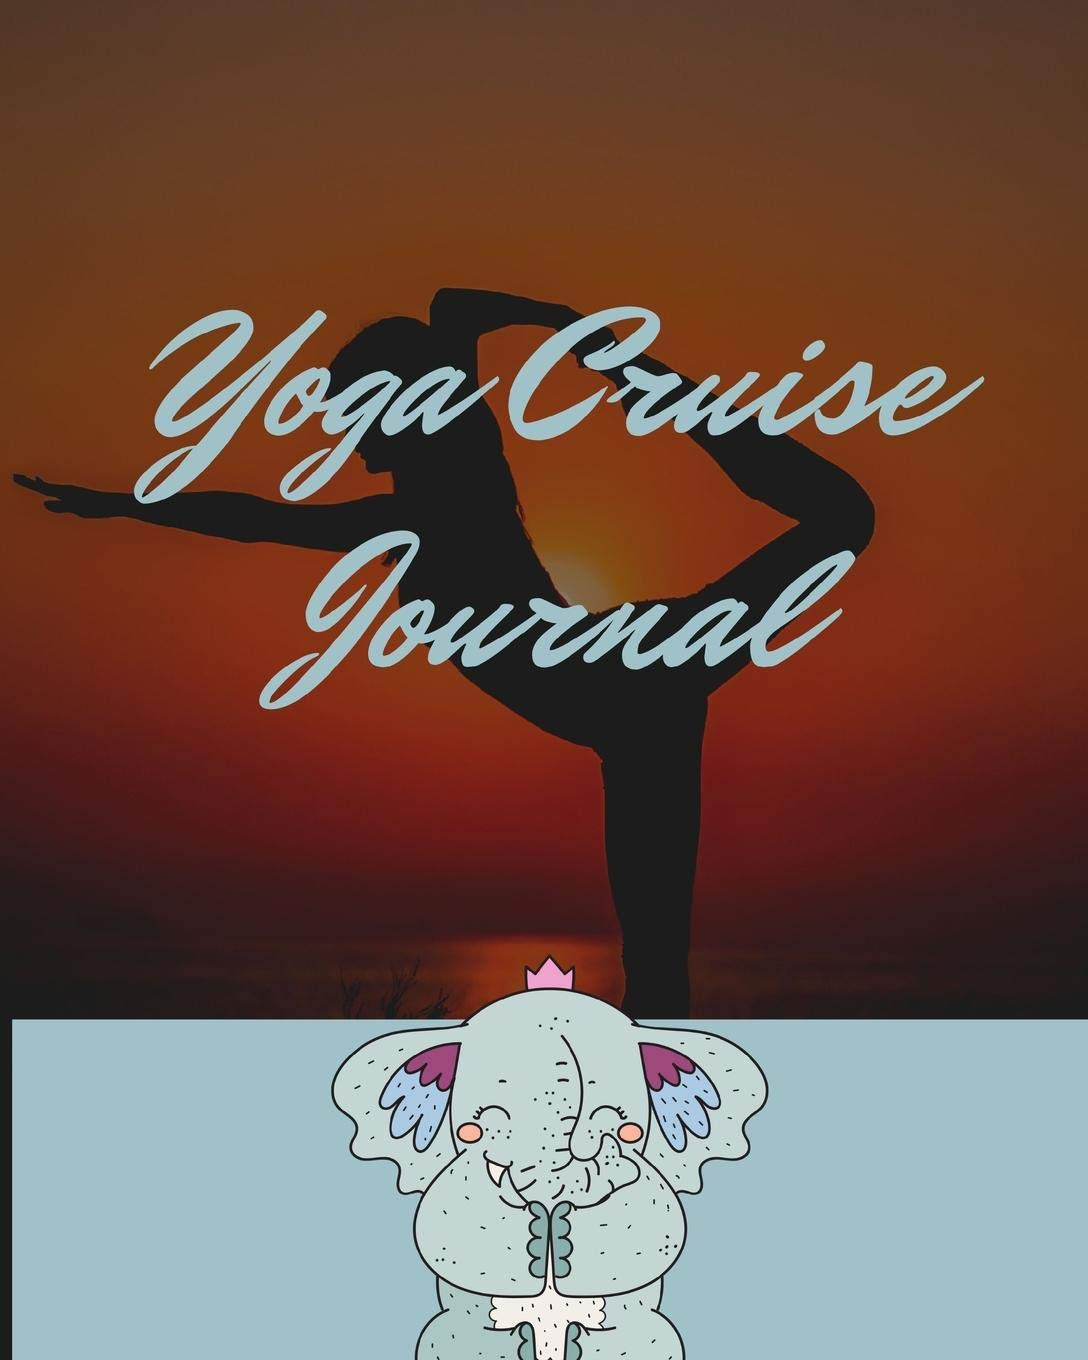 Yoga Cruise Journal: Zen Cruise Port and Excursion Organizer ...